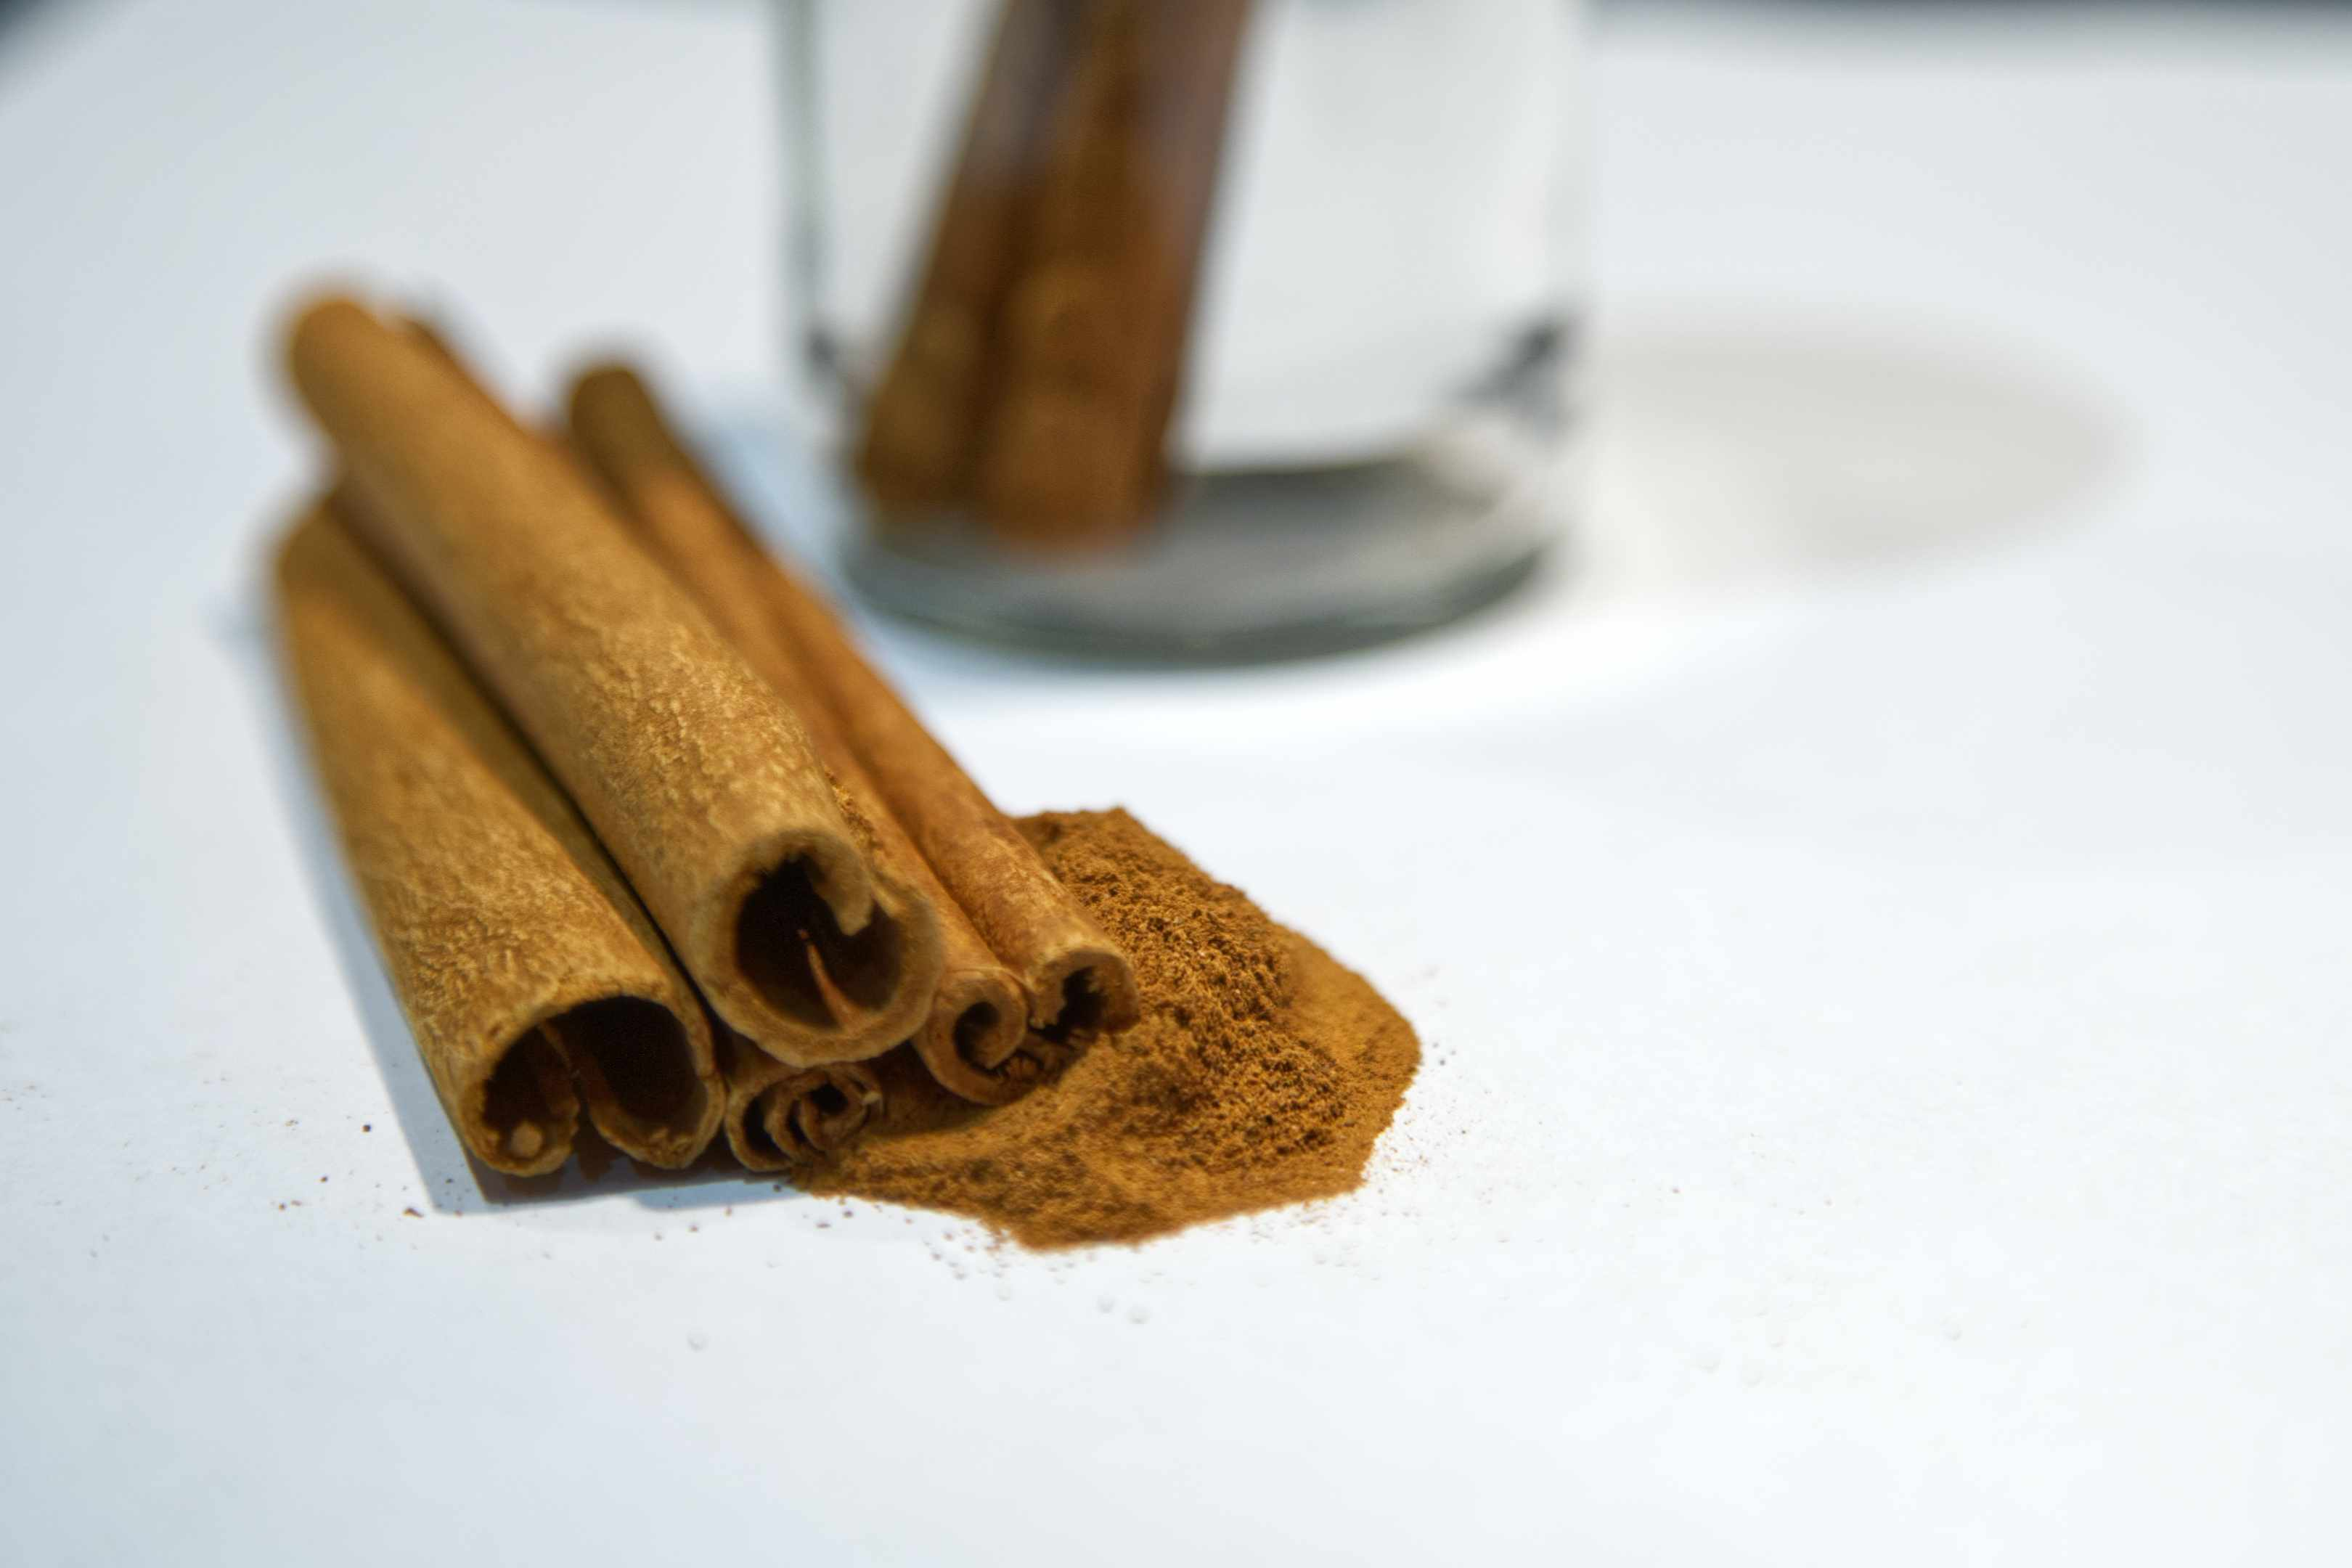 a few cinnamon sticks on white table with more in glass jar in background